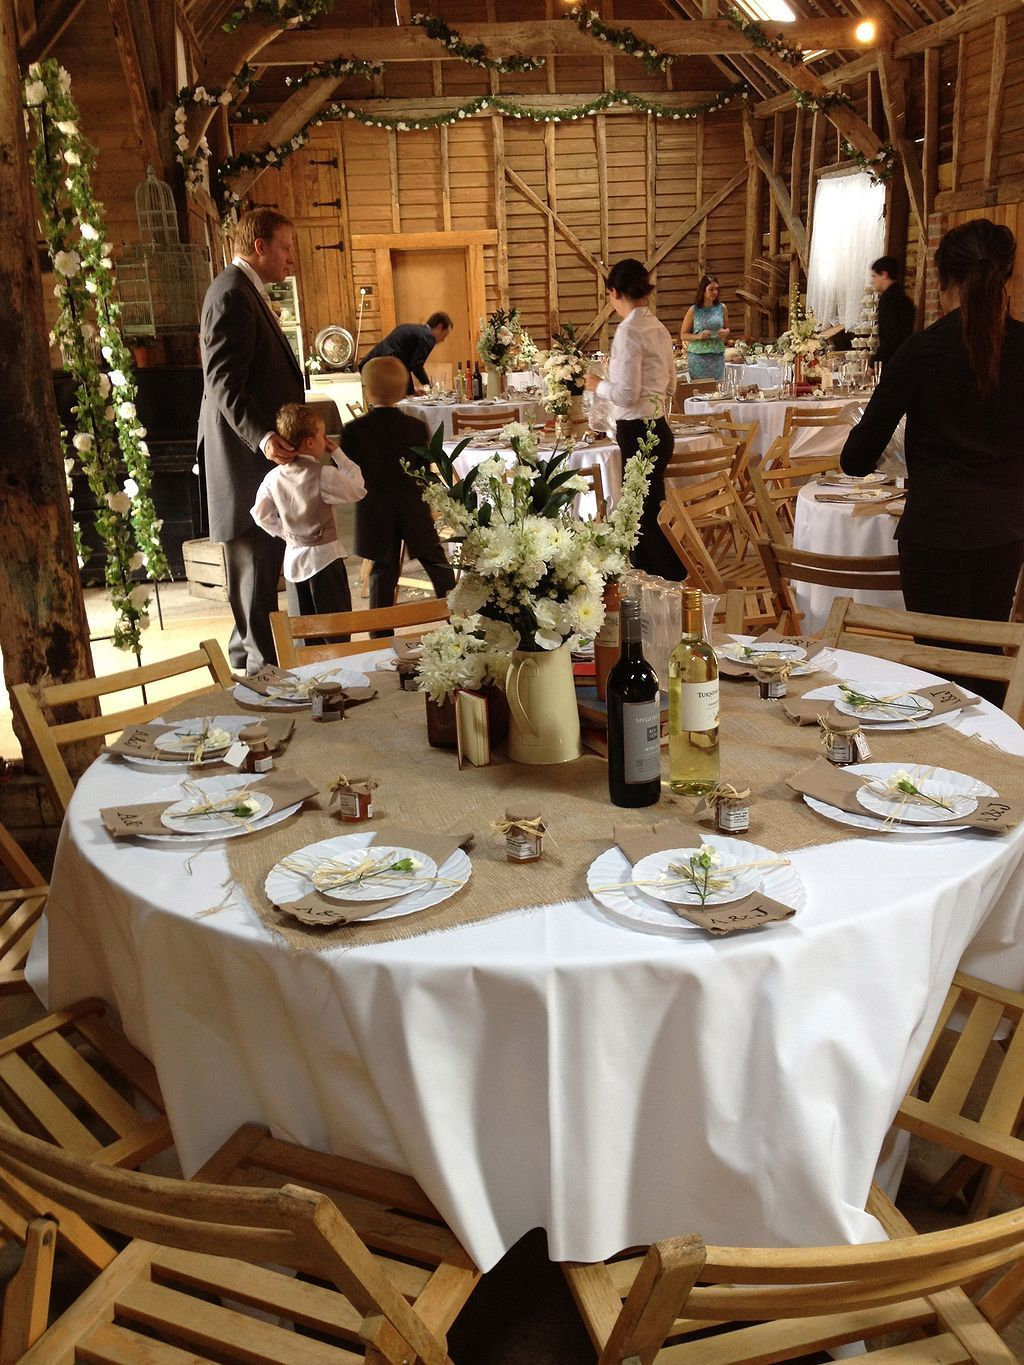 Burlap Table Decorations For Rustic Wedding 70 Rustic Wedding Table Decor Rustic Wedding Table Round Wedding Tables